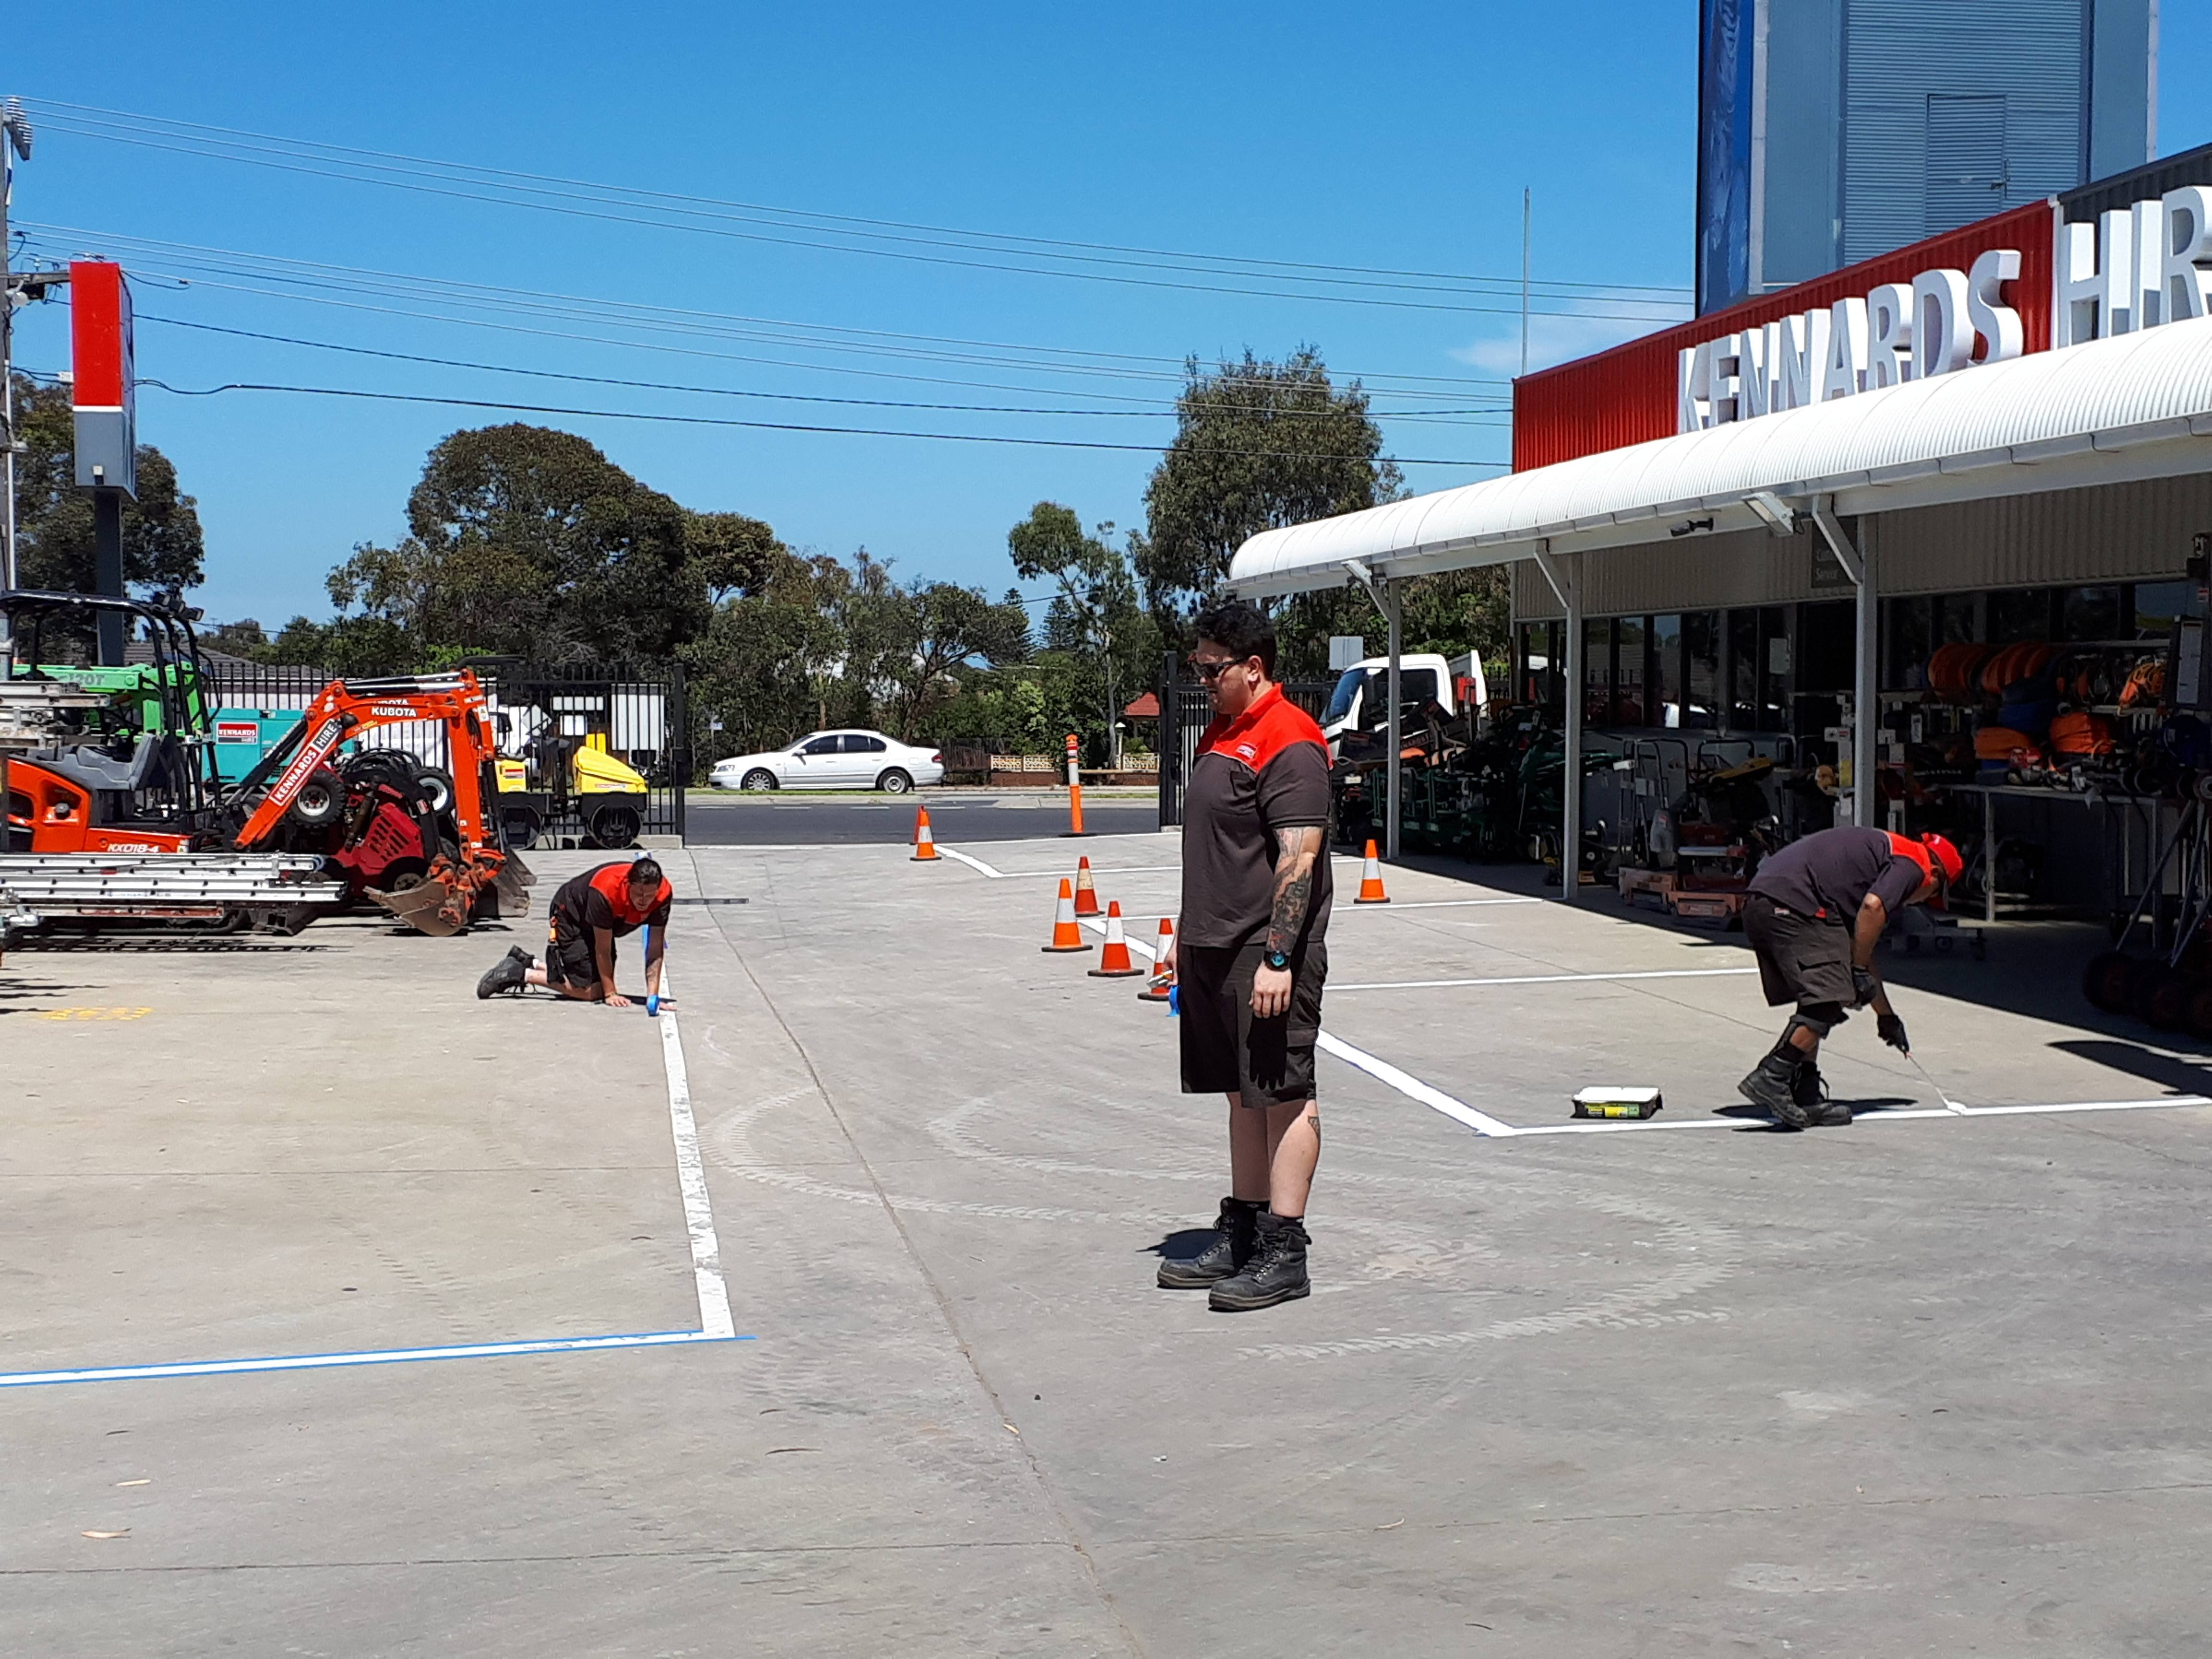 Moorabbin team keeping the yard in mint condition by repainting the lines on the pavement